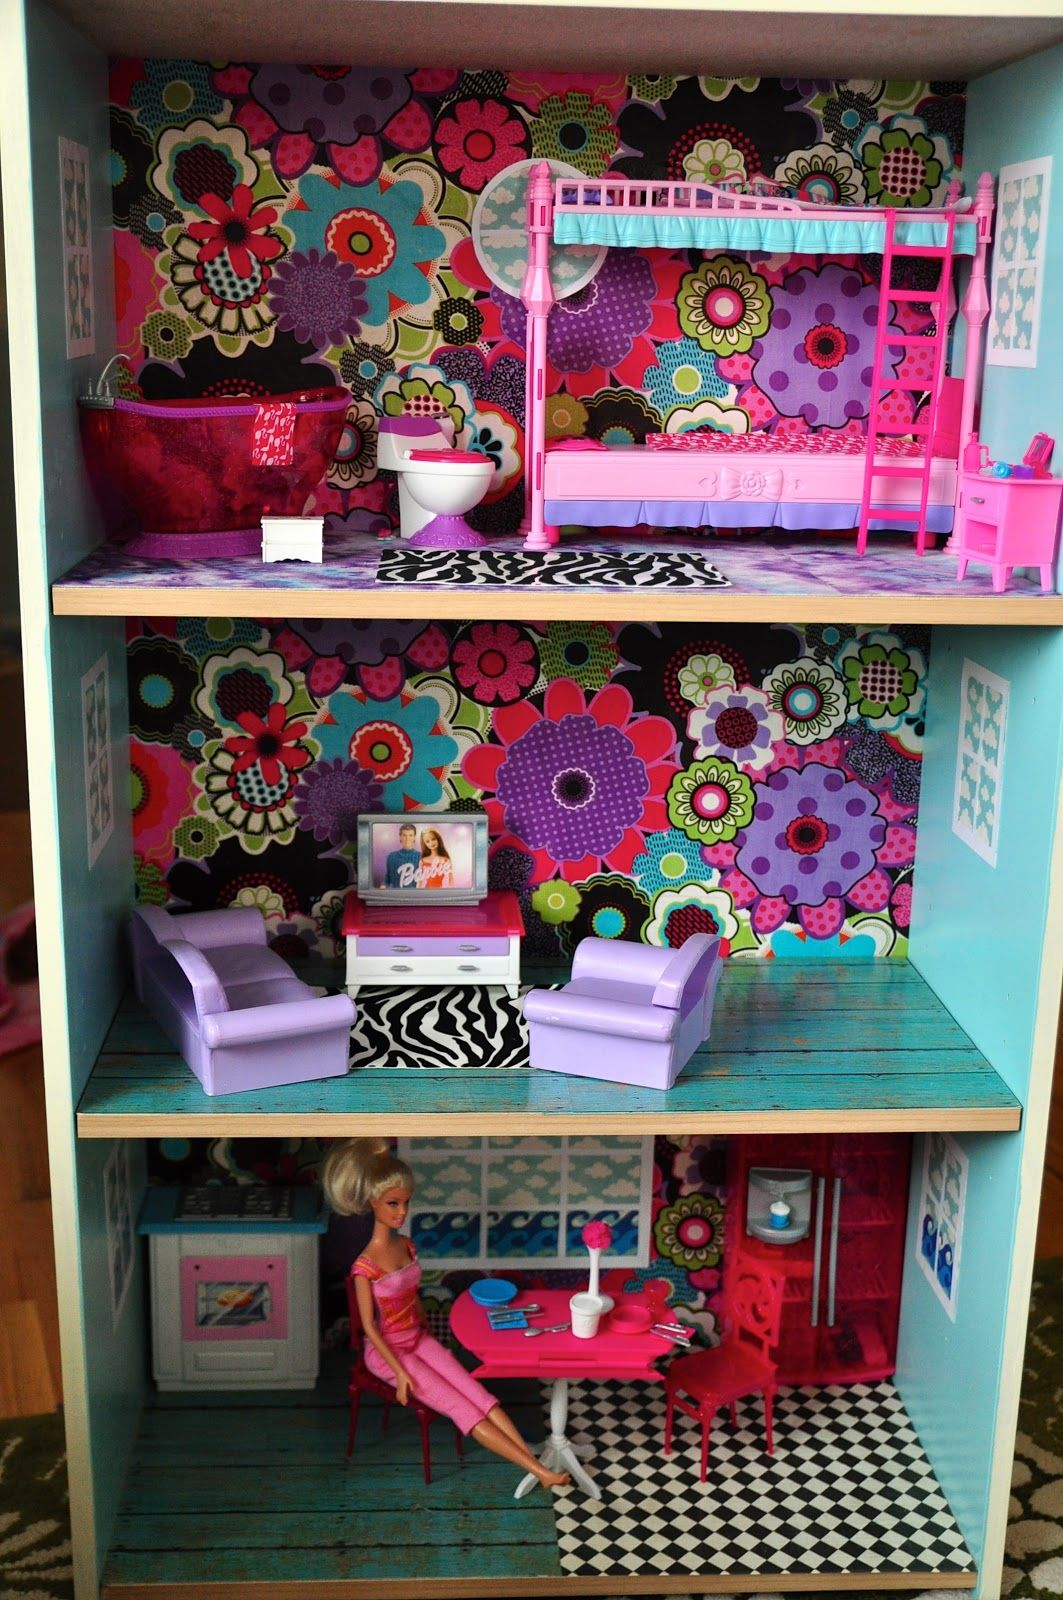 #9D6F2E Cube Shelves Doll Houses: Dollhouse Storage Cube. Diy Barbie Doll  with 1063x1600 px of Most Effective Book Cases At Target 16001063 wallpaper @ avoidforclosure.info